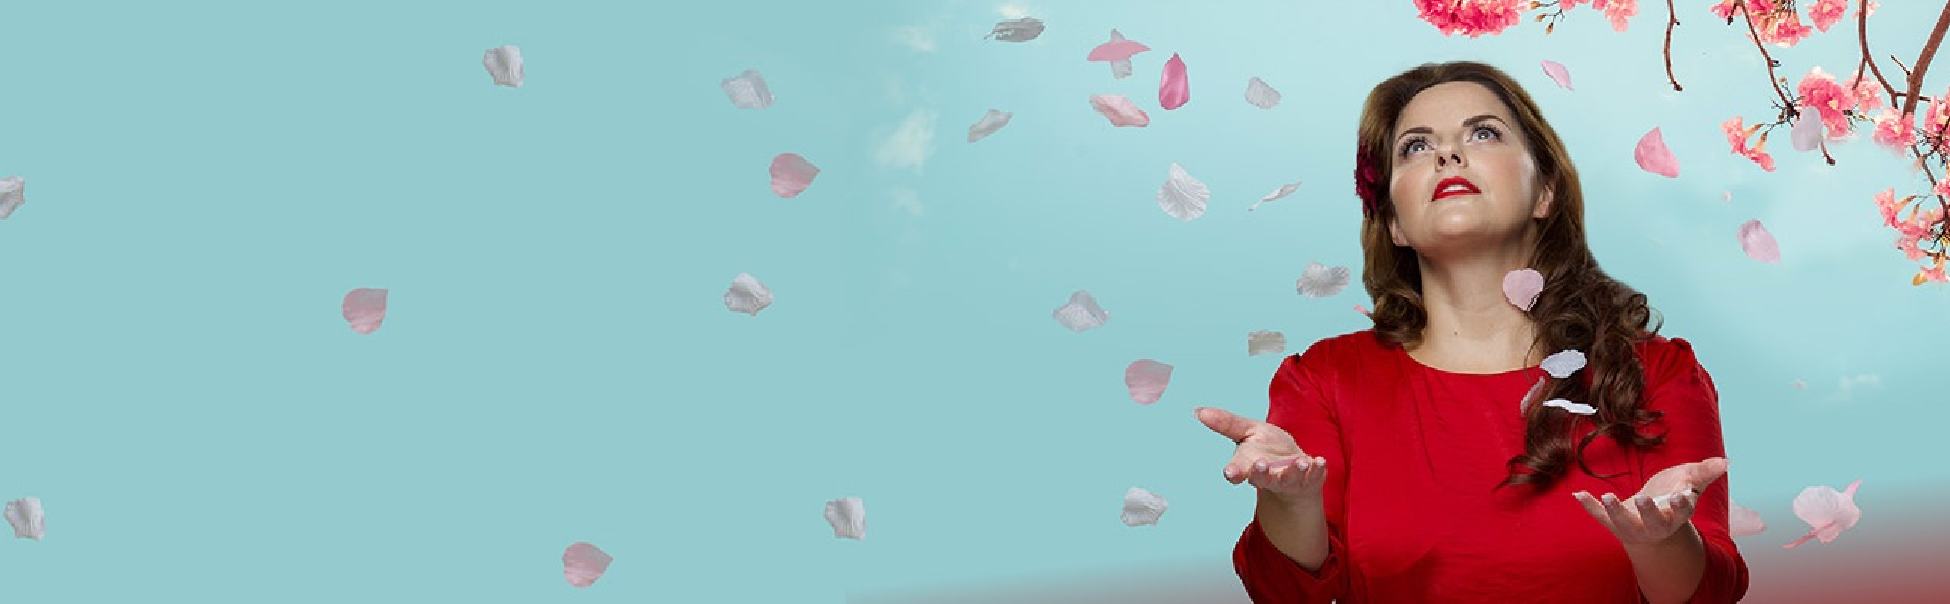 A woman dressed in red looking upwards with her palms open to catch cheery blossom petals as they're falling.